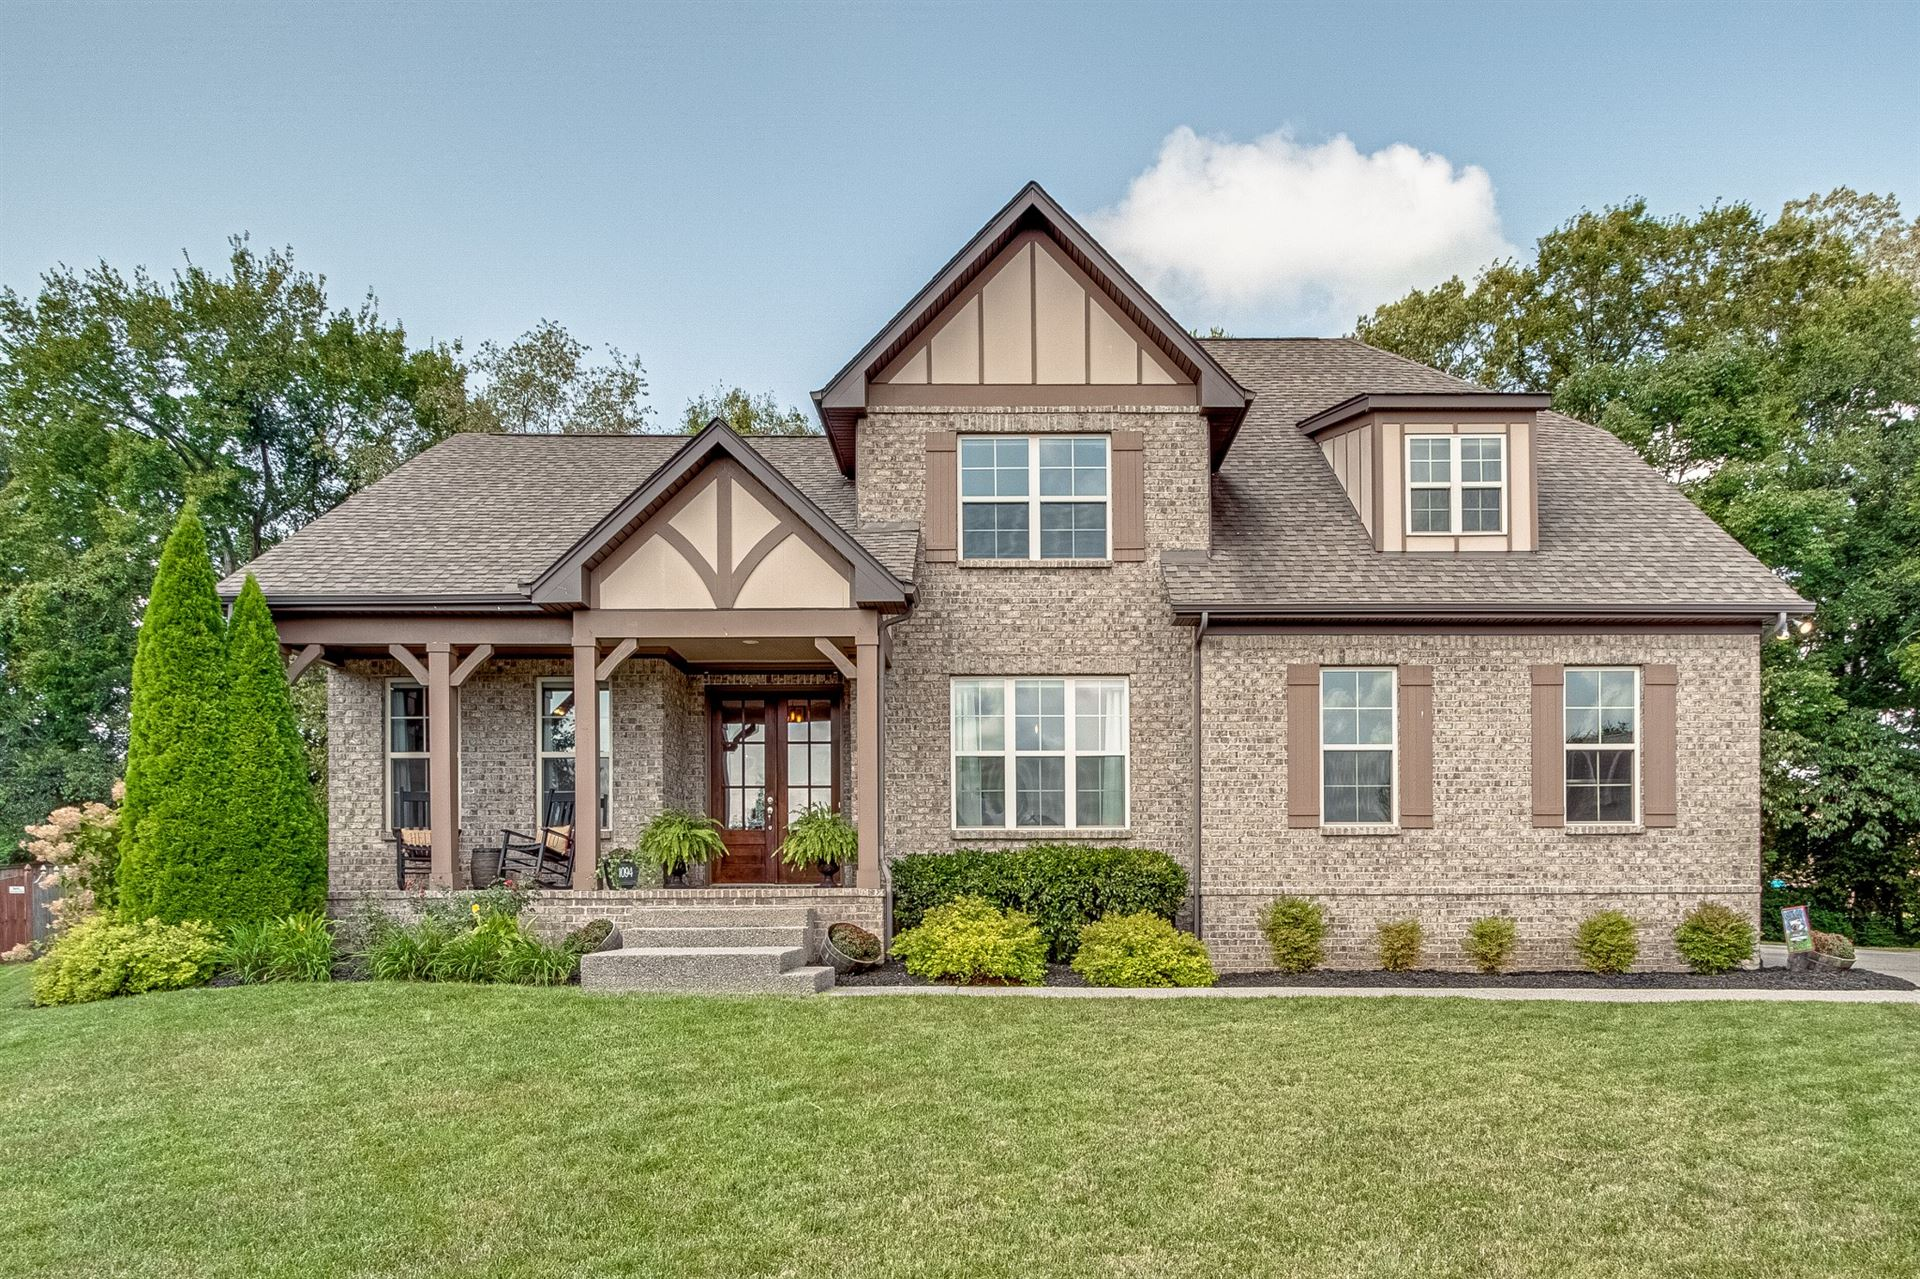 Photo of 1094 Cantwell Pl, Spring Hill, TN 37174 (MLS # 2290260)